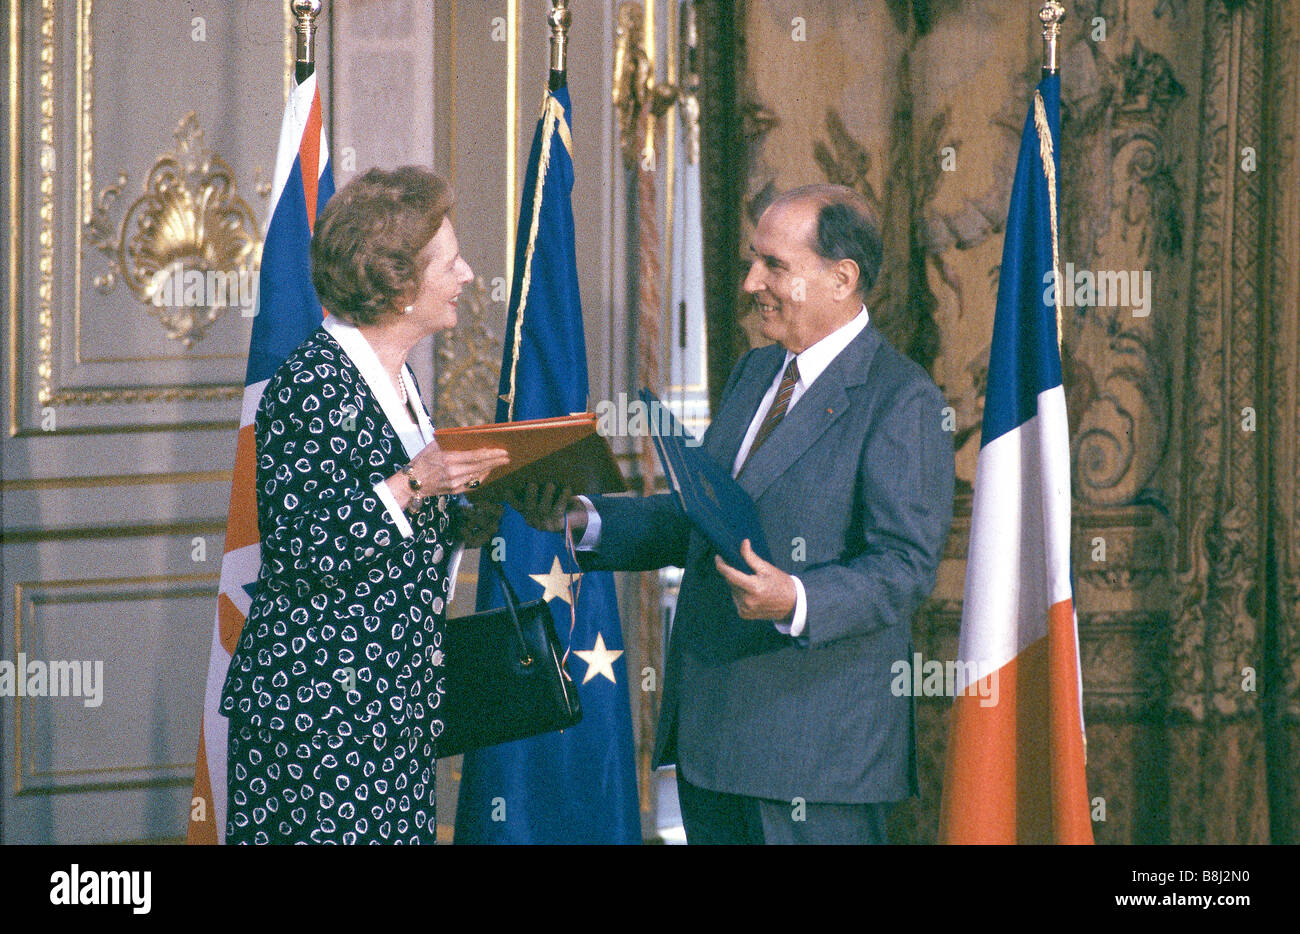 Prime Minister Thatcher and President Mitterrand ratify the Channel Tunnel treaty in 1987, giving the go-ahead for - Stock Image